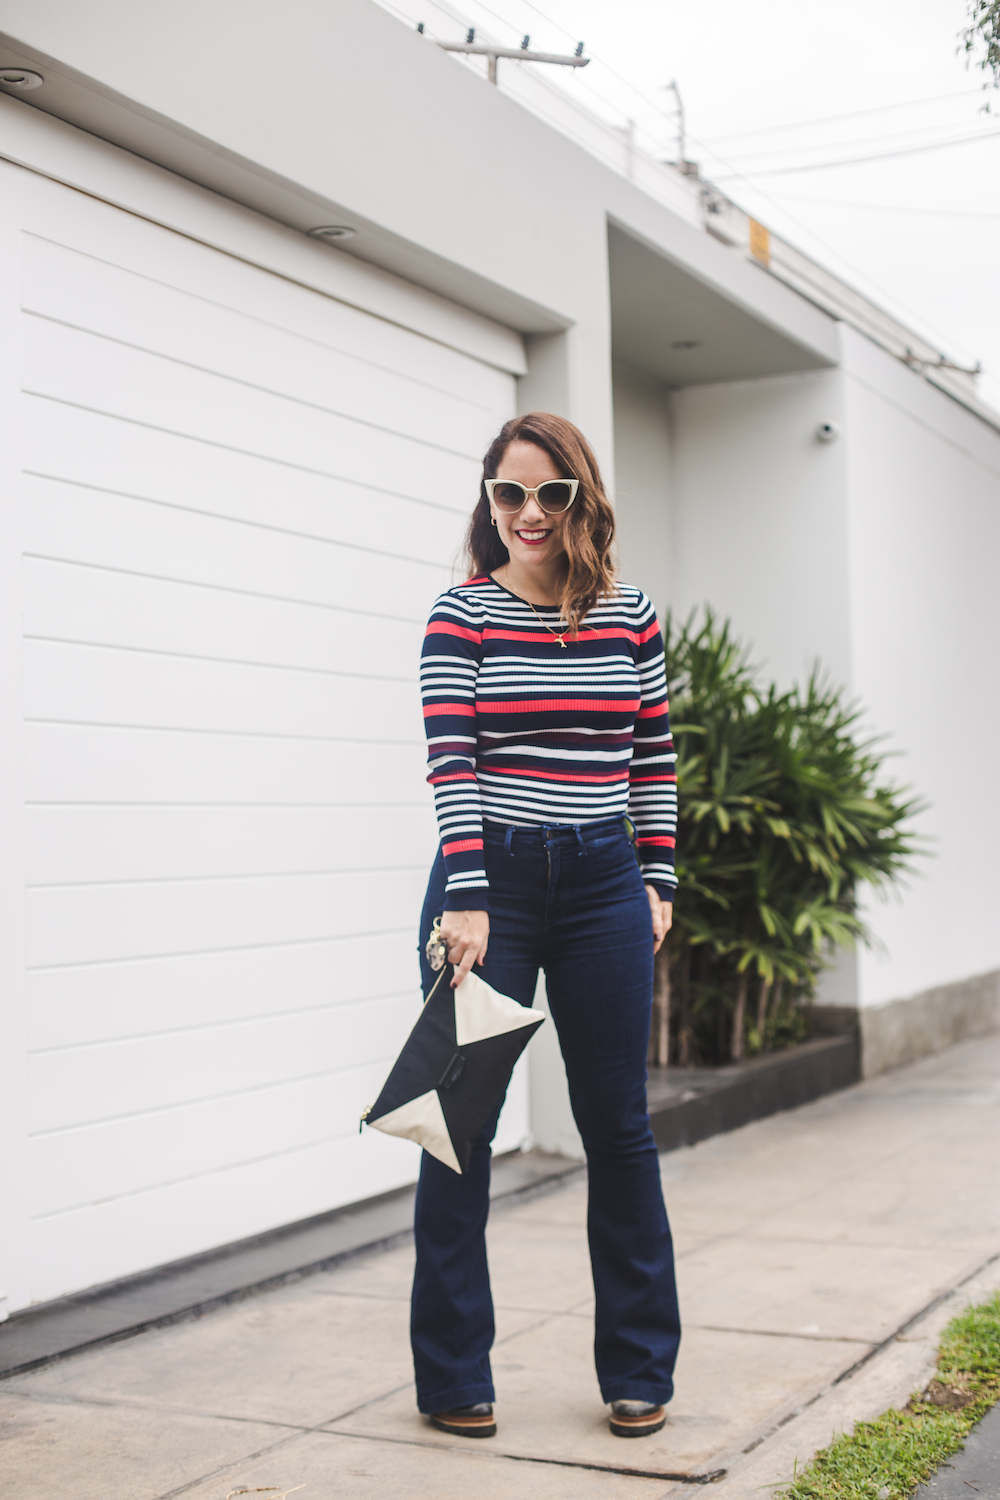 Zara 90's shirt striped - Gap wide leg jeans - Zapatos Lola - Kipling clutch - La Vida de Serendipity